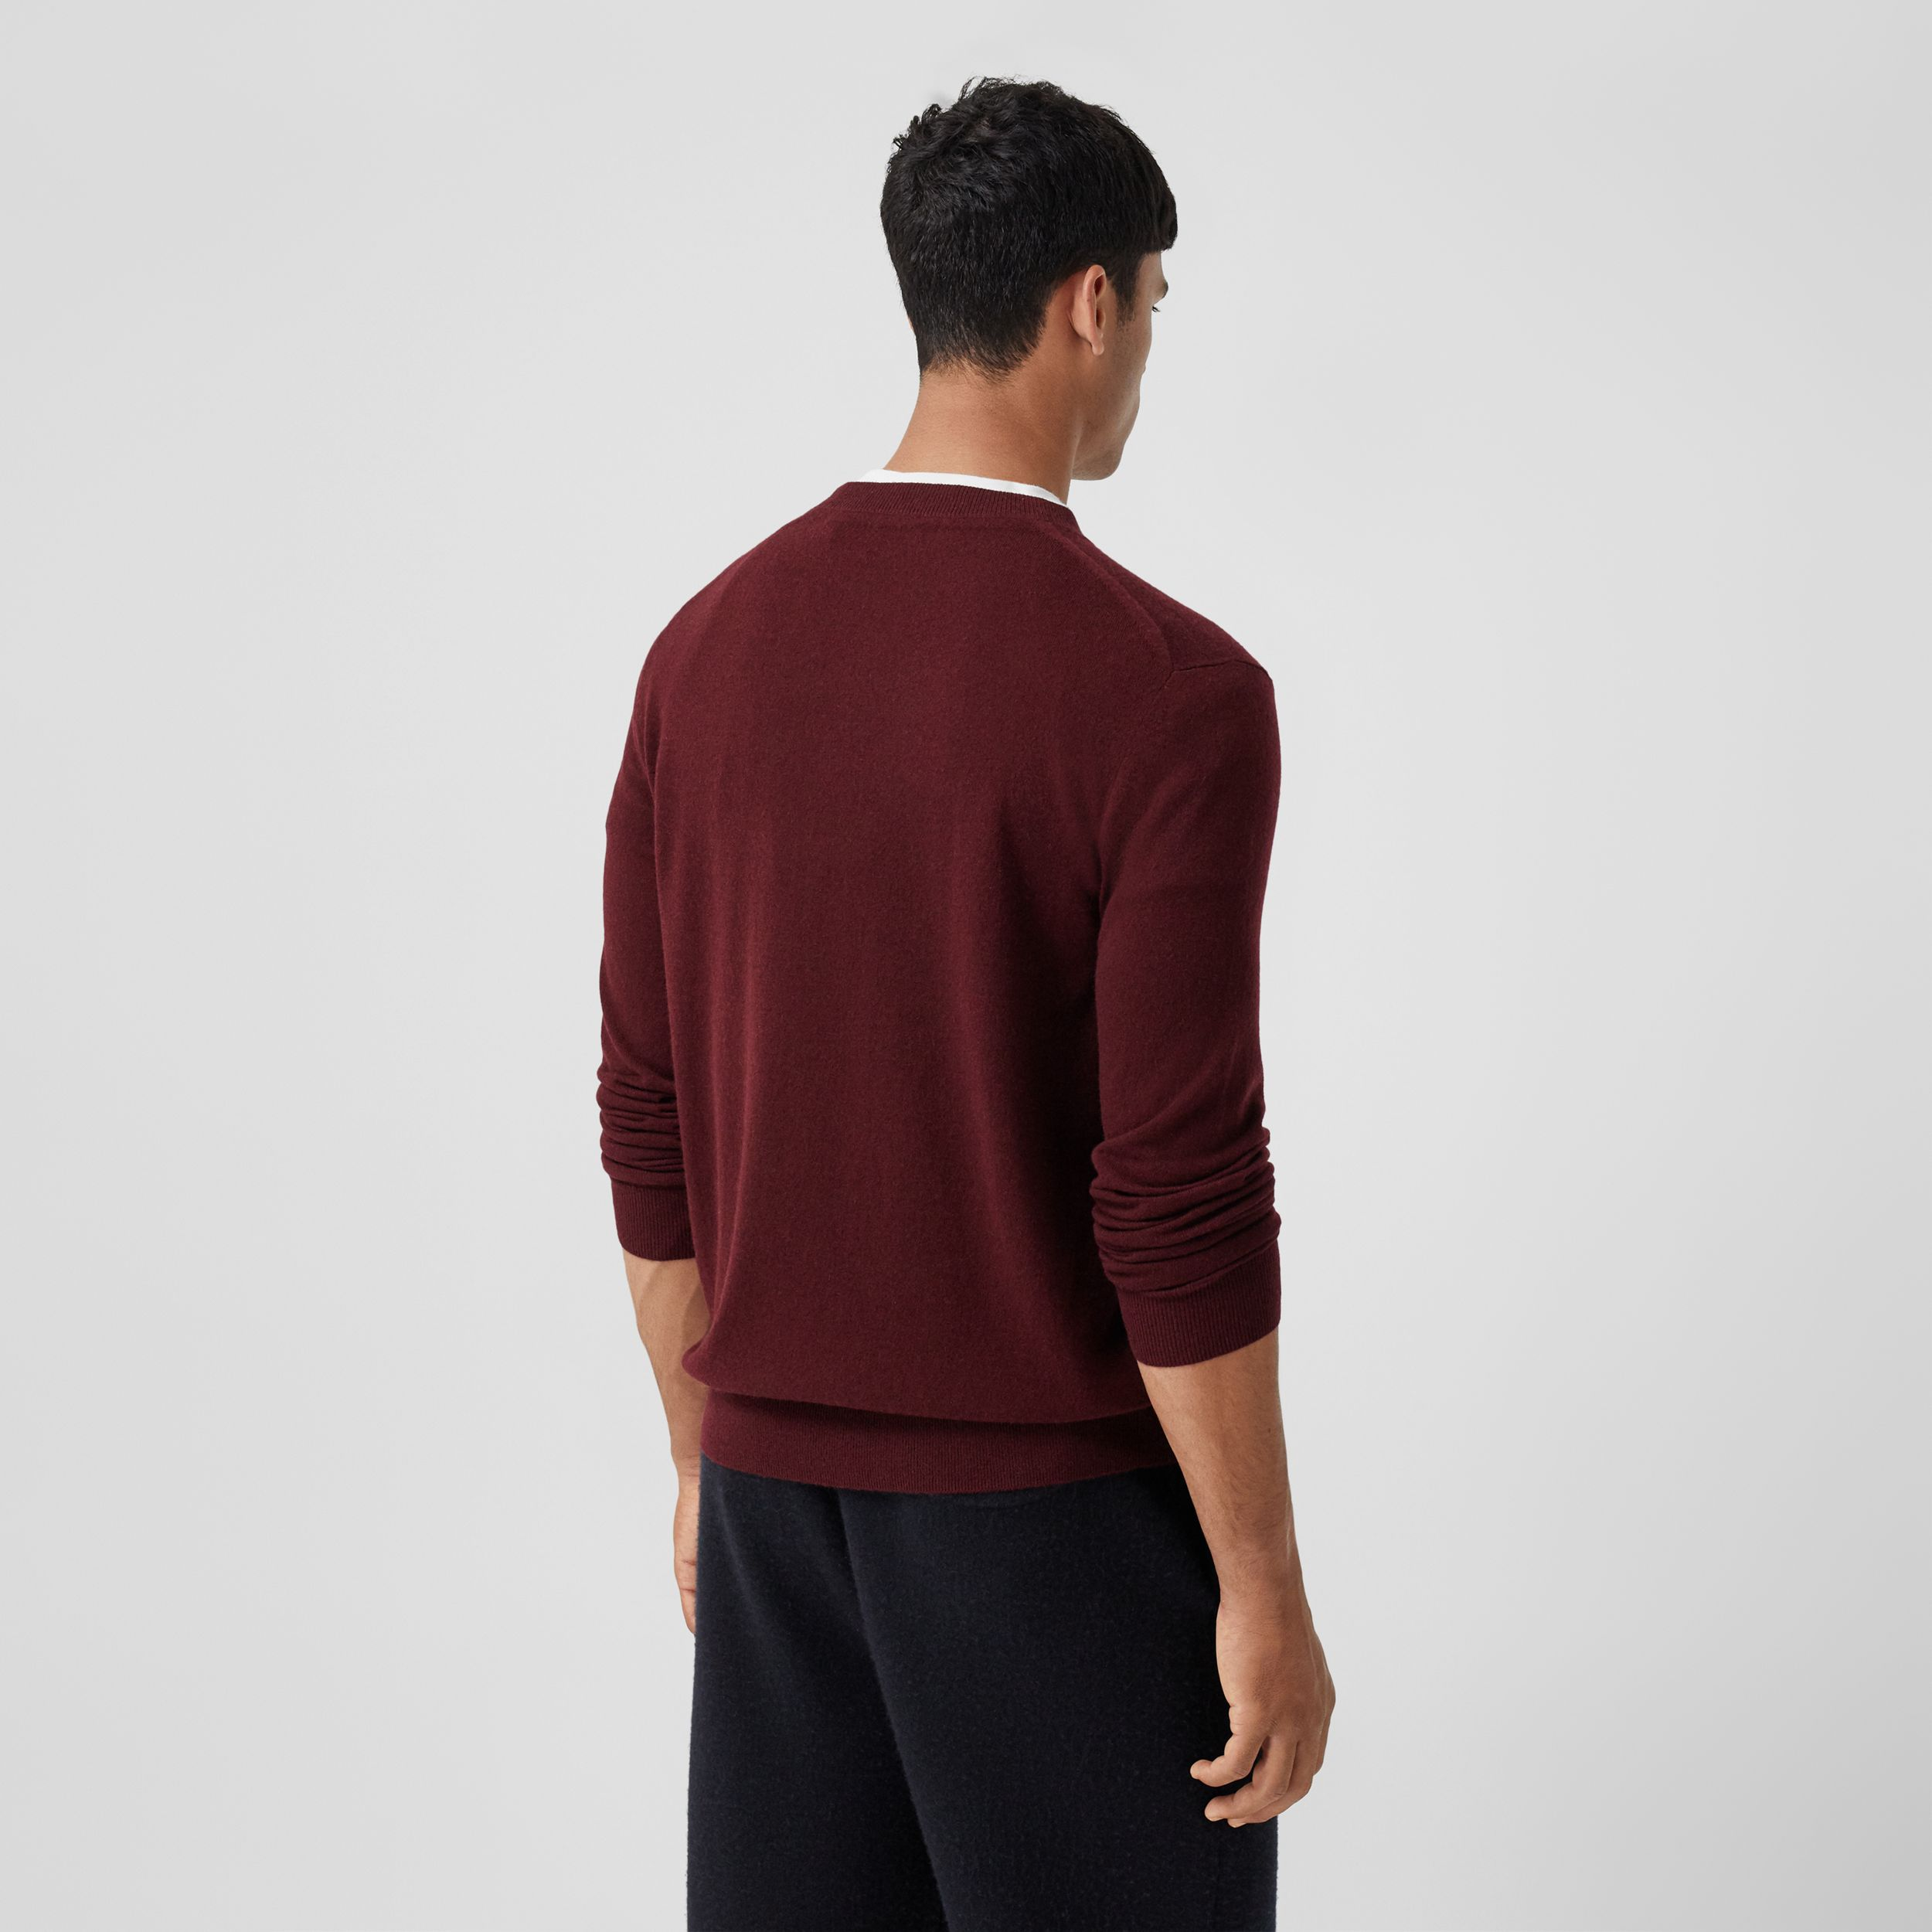 Monogram Motif Cashmere Sweater in Deep Merlot - Men | Burberry - 3